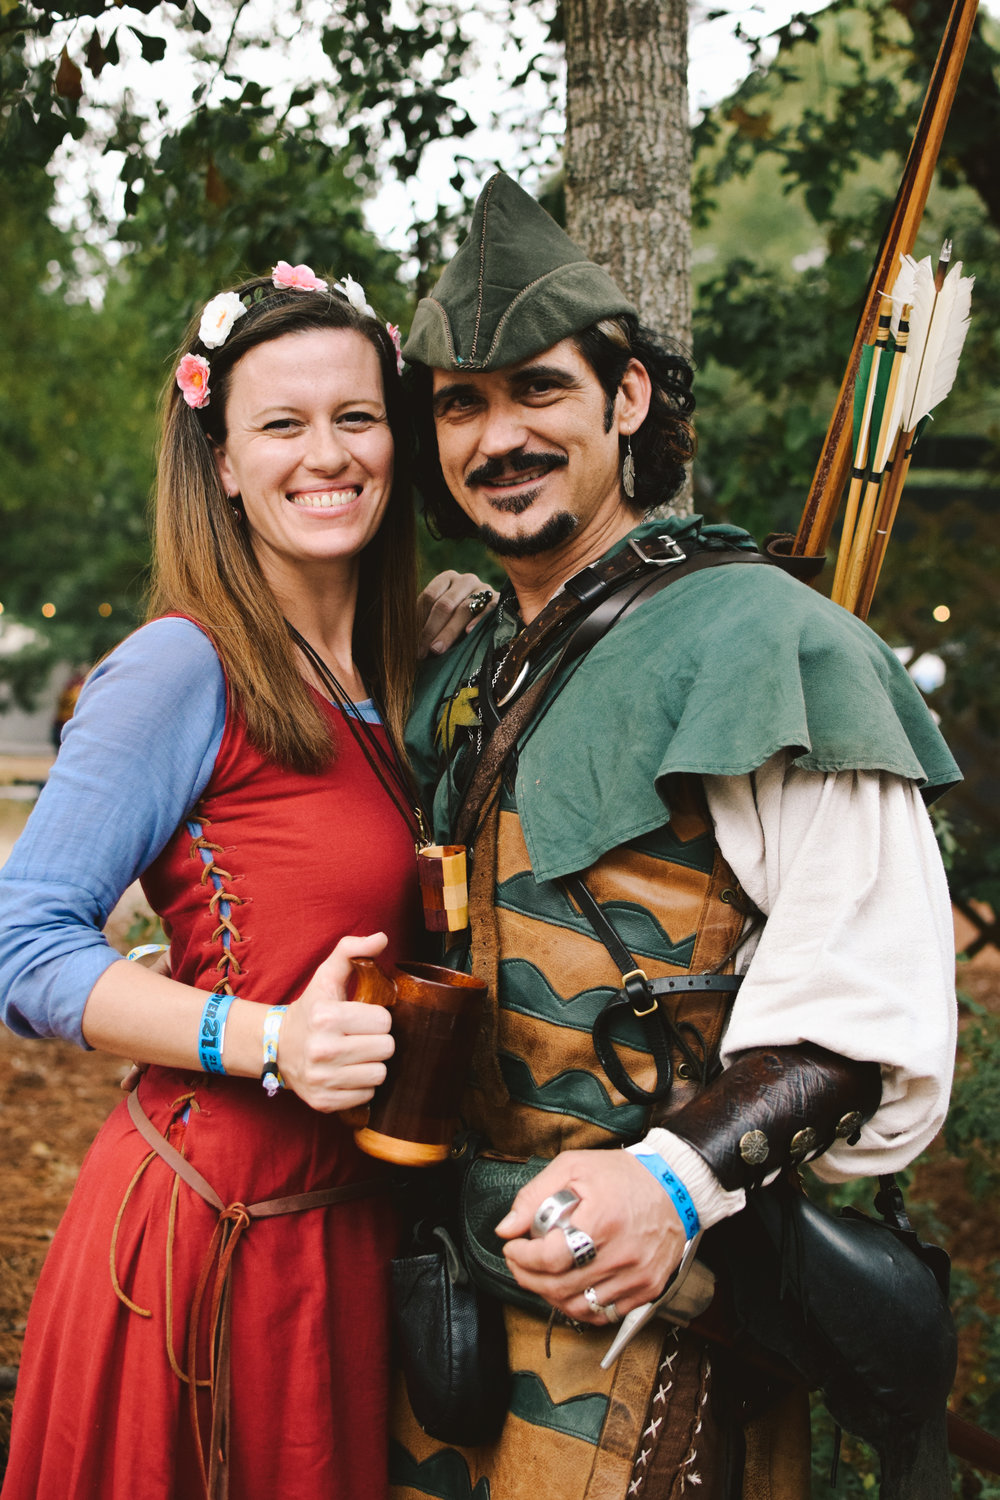 The first annual Sound On Sound Fest was held at the Sherwood Forest Faire.